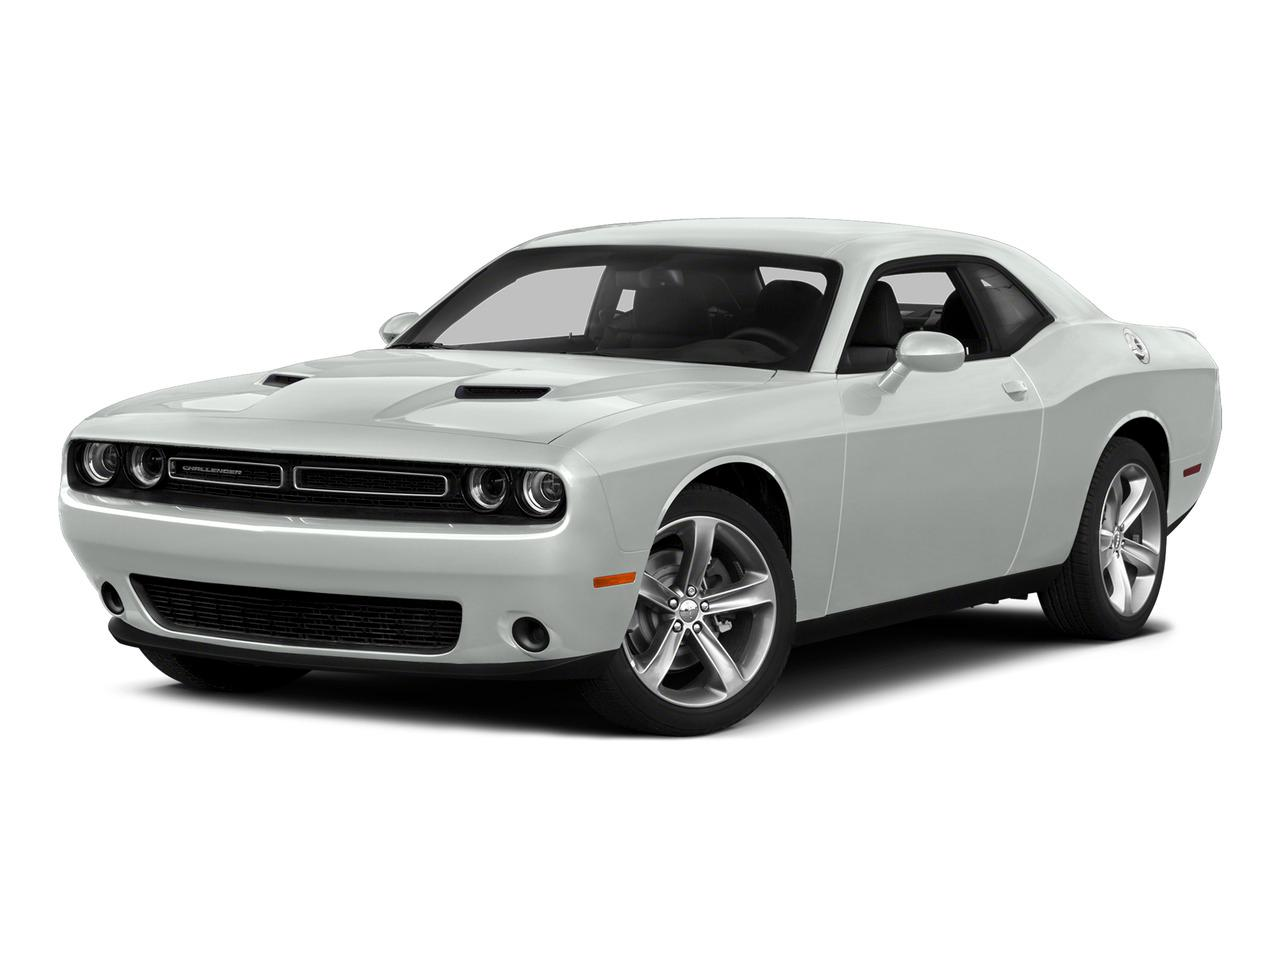 2015 Dodge Challenger Vehicle Photo in Owensboro, KY 42303